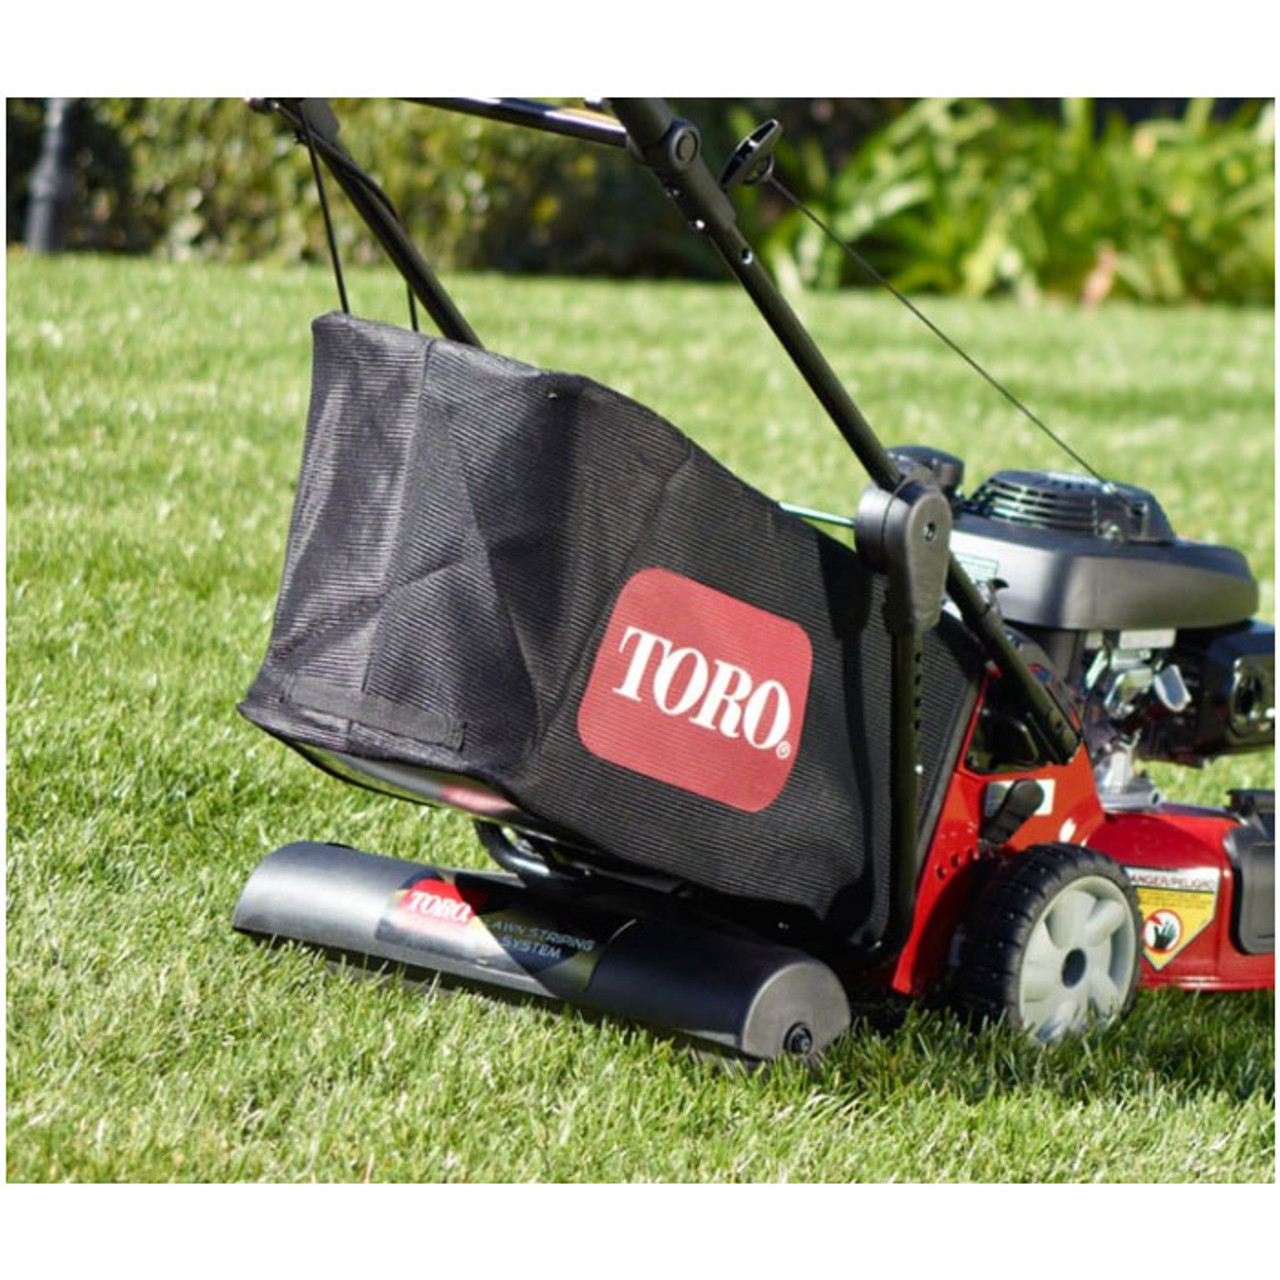 Toro Lawn Striping System for 20